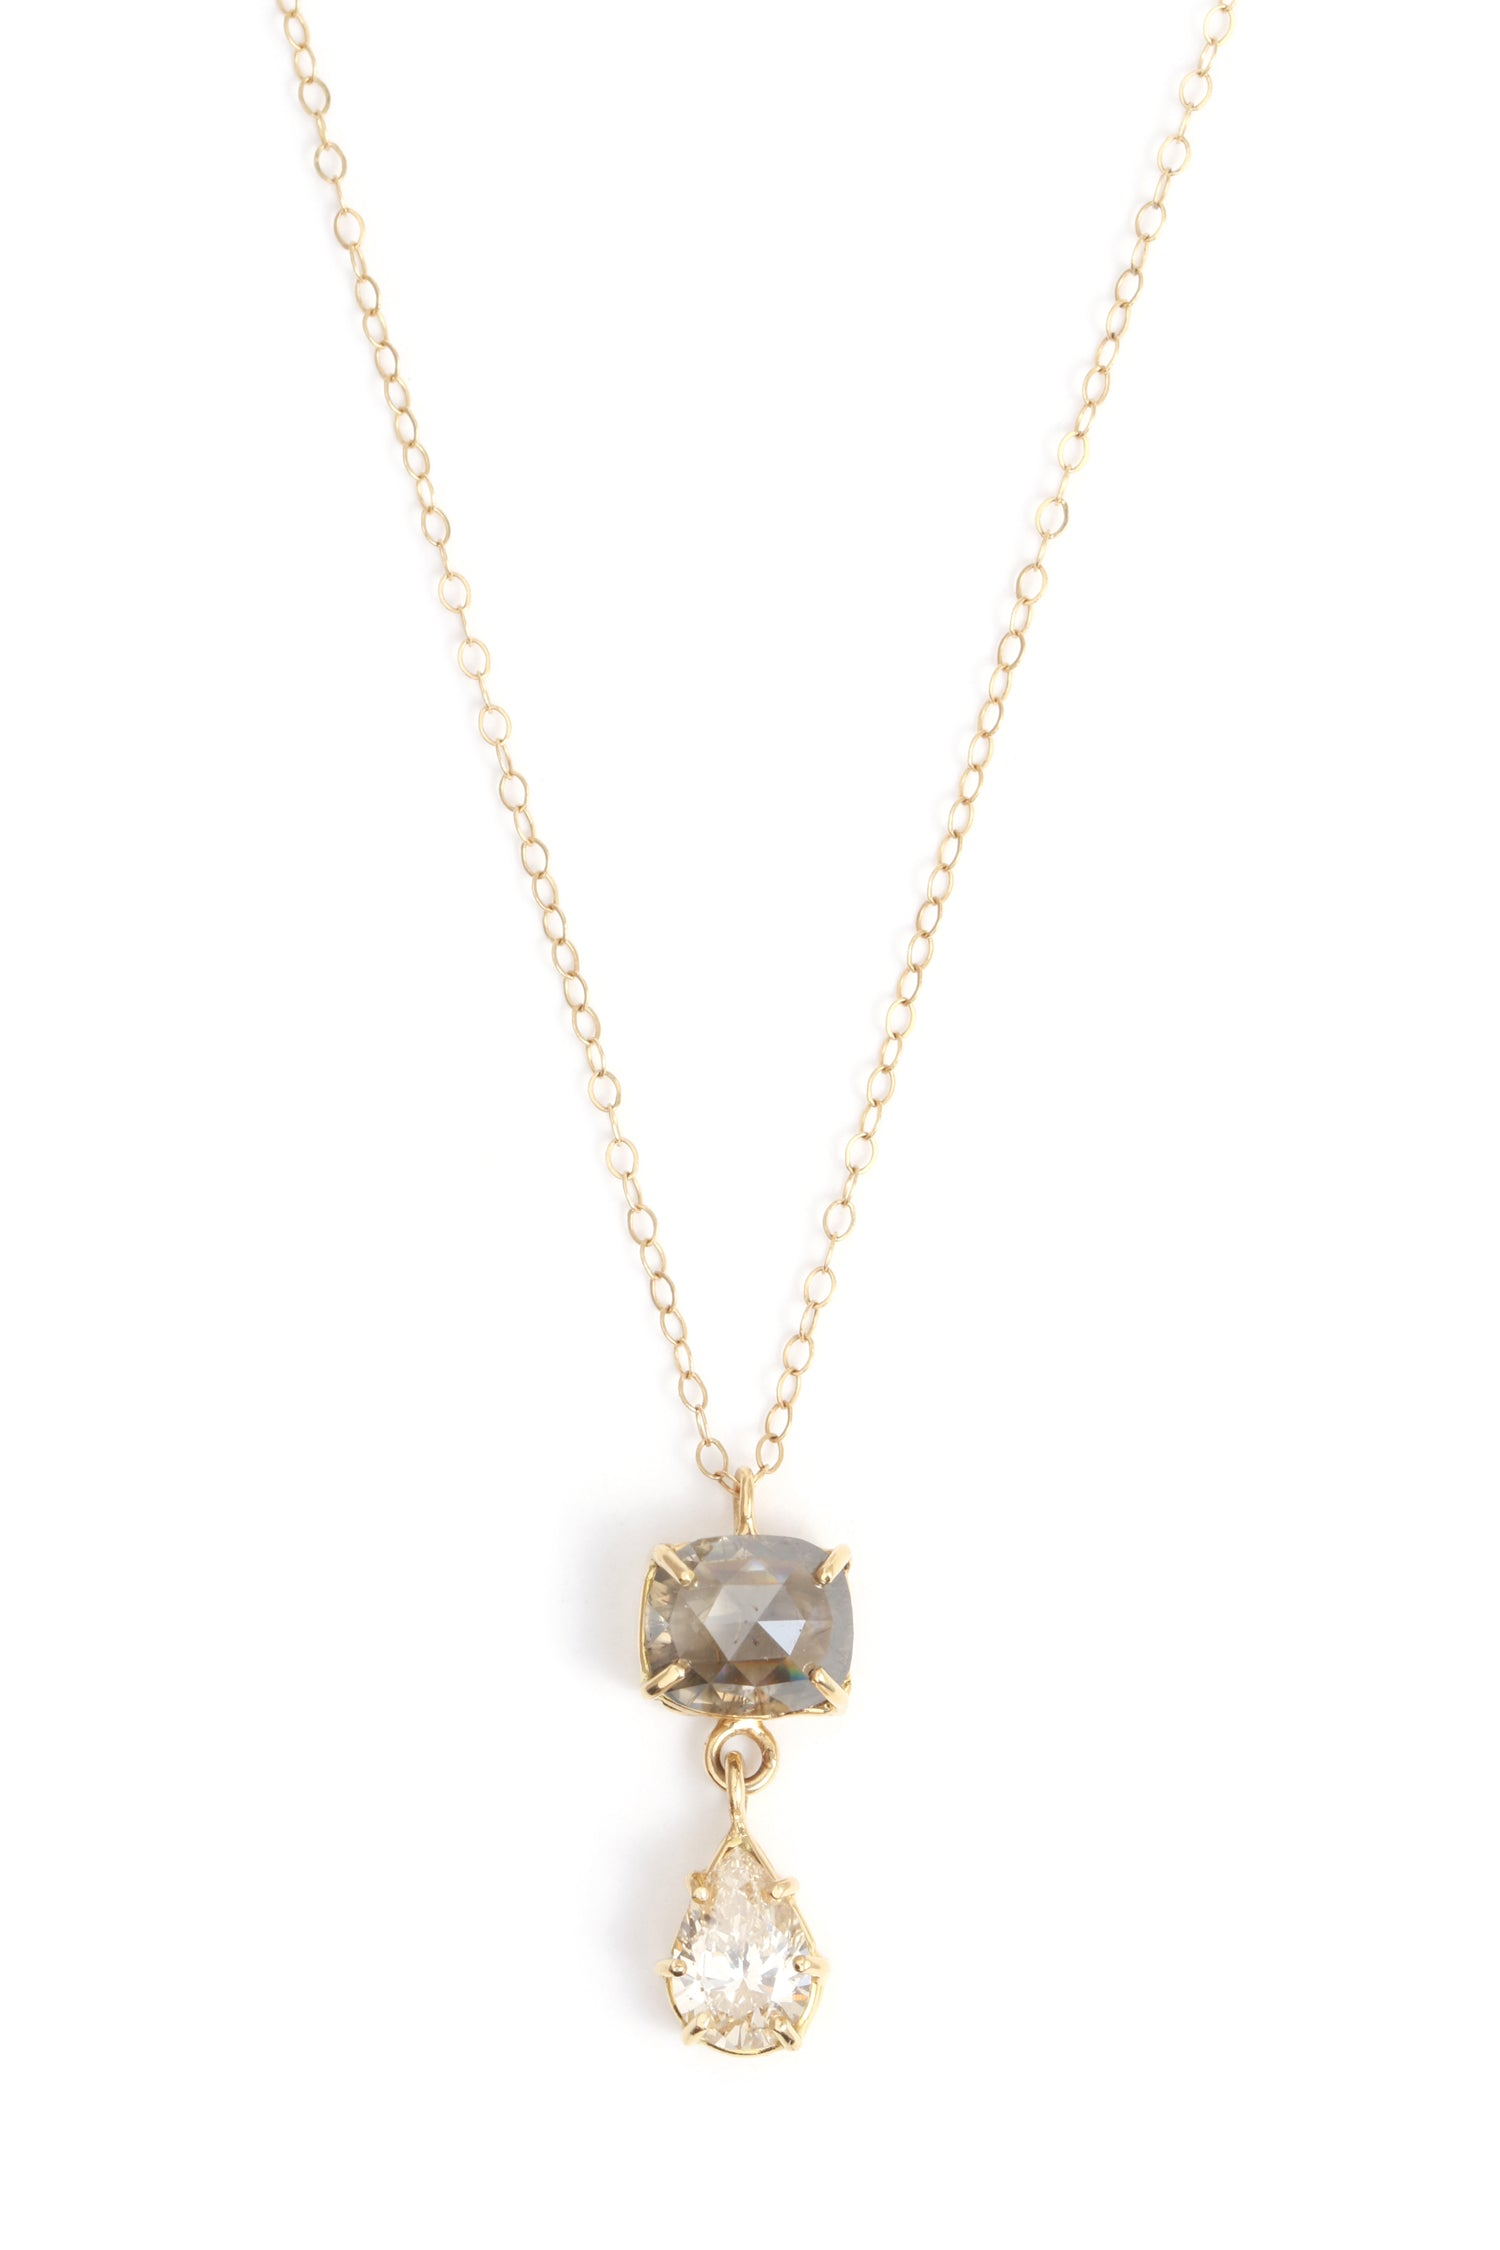 Double Diamond Pendant Necklace - Melissa Joy Manning Jewelry